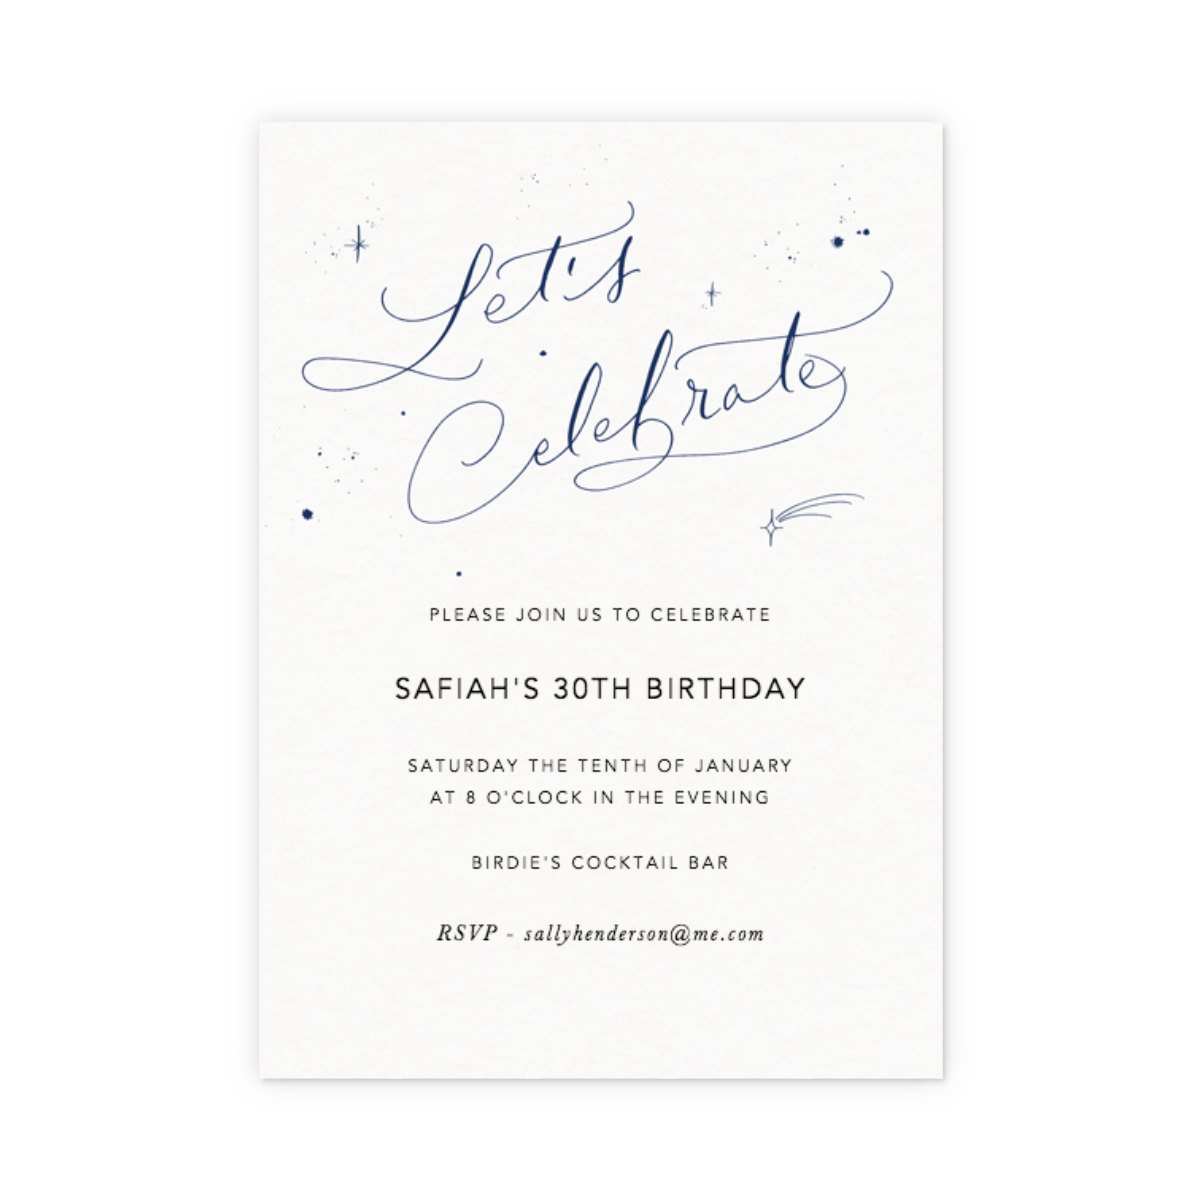 Https%3a%2f%2fwww.papier.com%2fproduct image%2f25956%2f4%2flet s celebrate starry navy 6496 front 1542217488.png?ixlib=rb 1.1